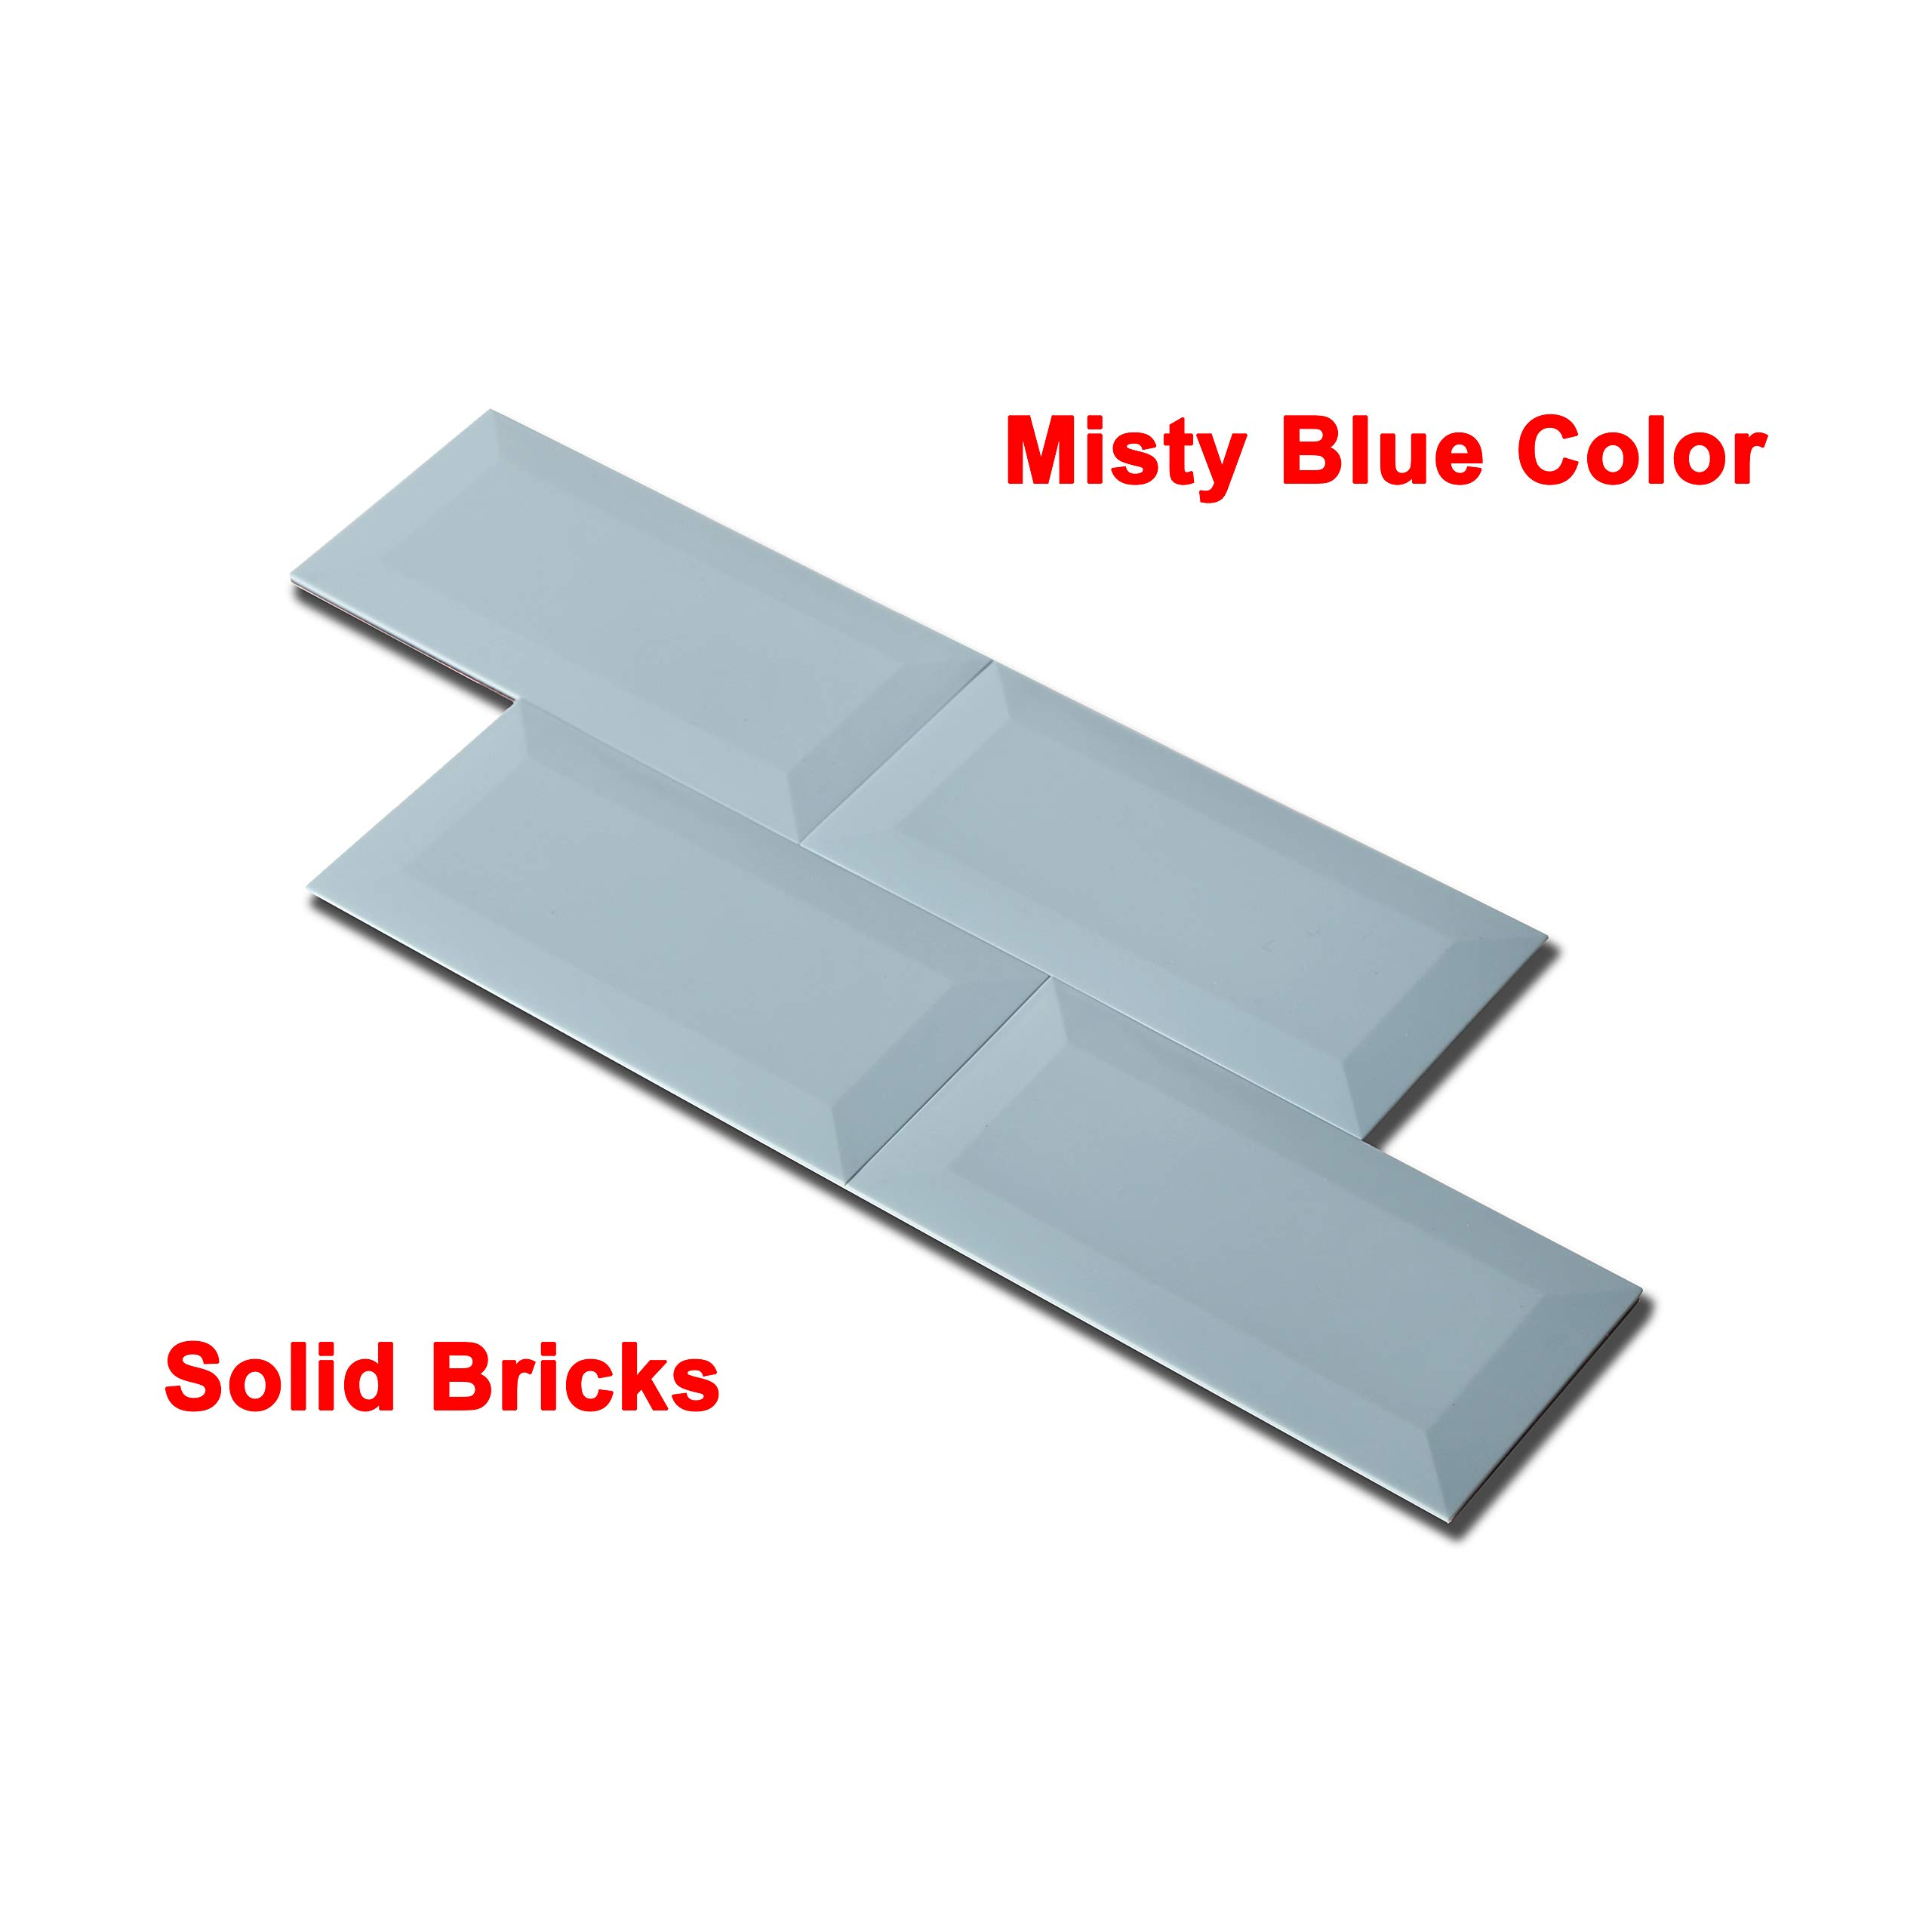 artesanía muro Peel and Stick Subway Tiles, Backsplash Tiles, Misty Blue Color, Water Proof, Anti-Moldy, 14.7 inch x 6 inch per Tile (Pack in 2 x Tiles)